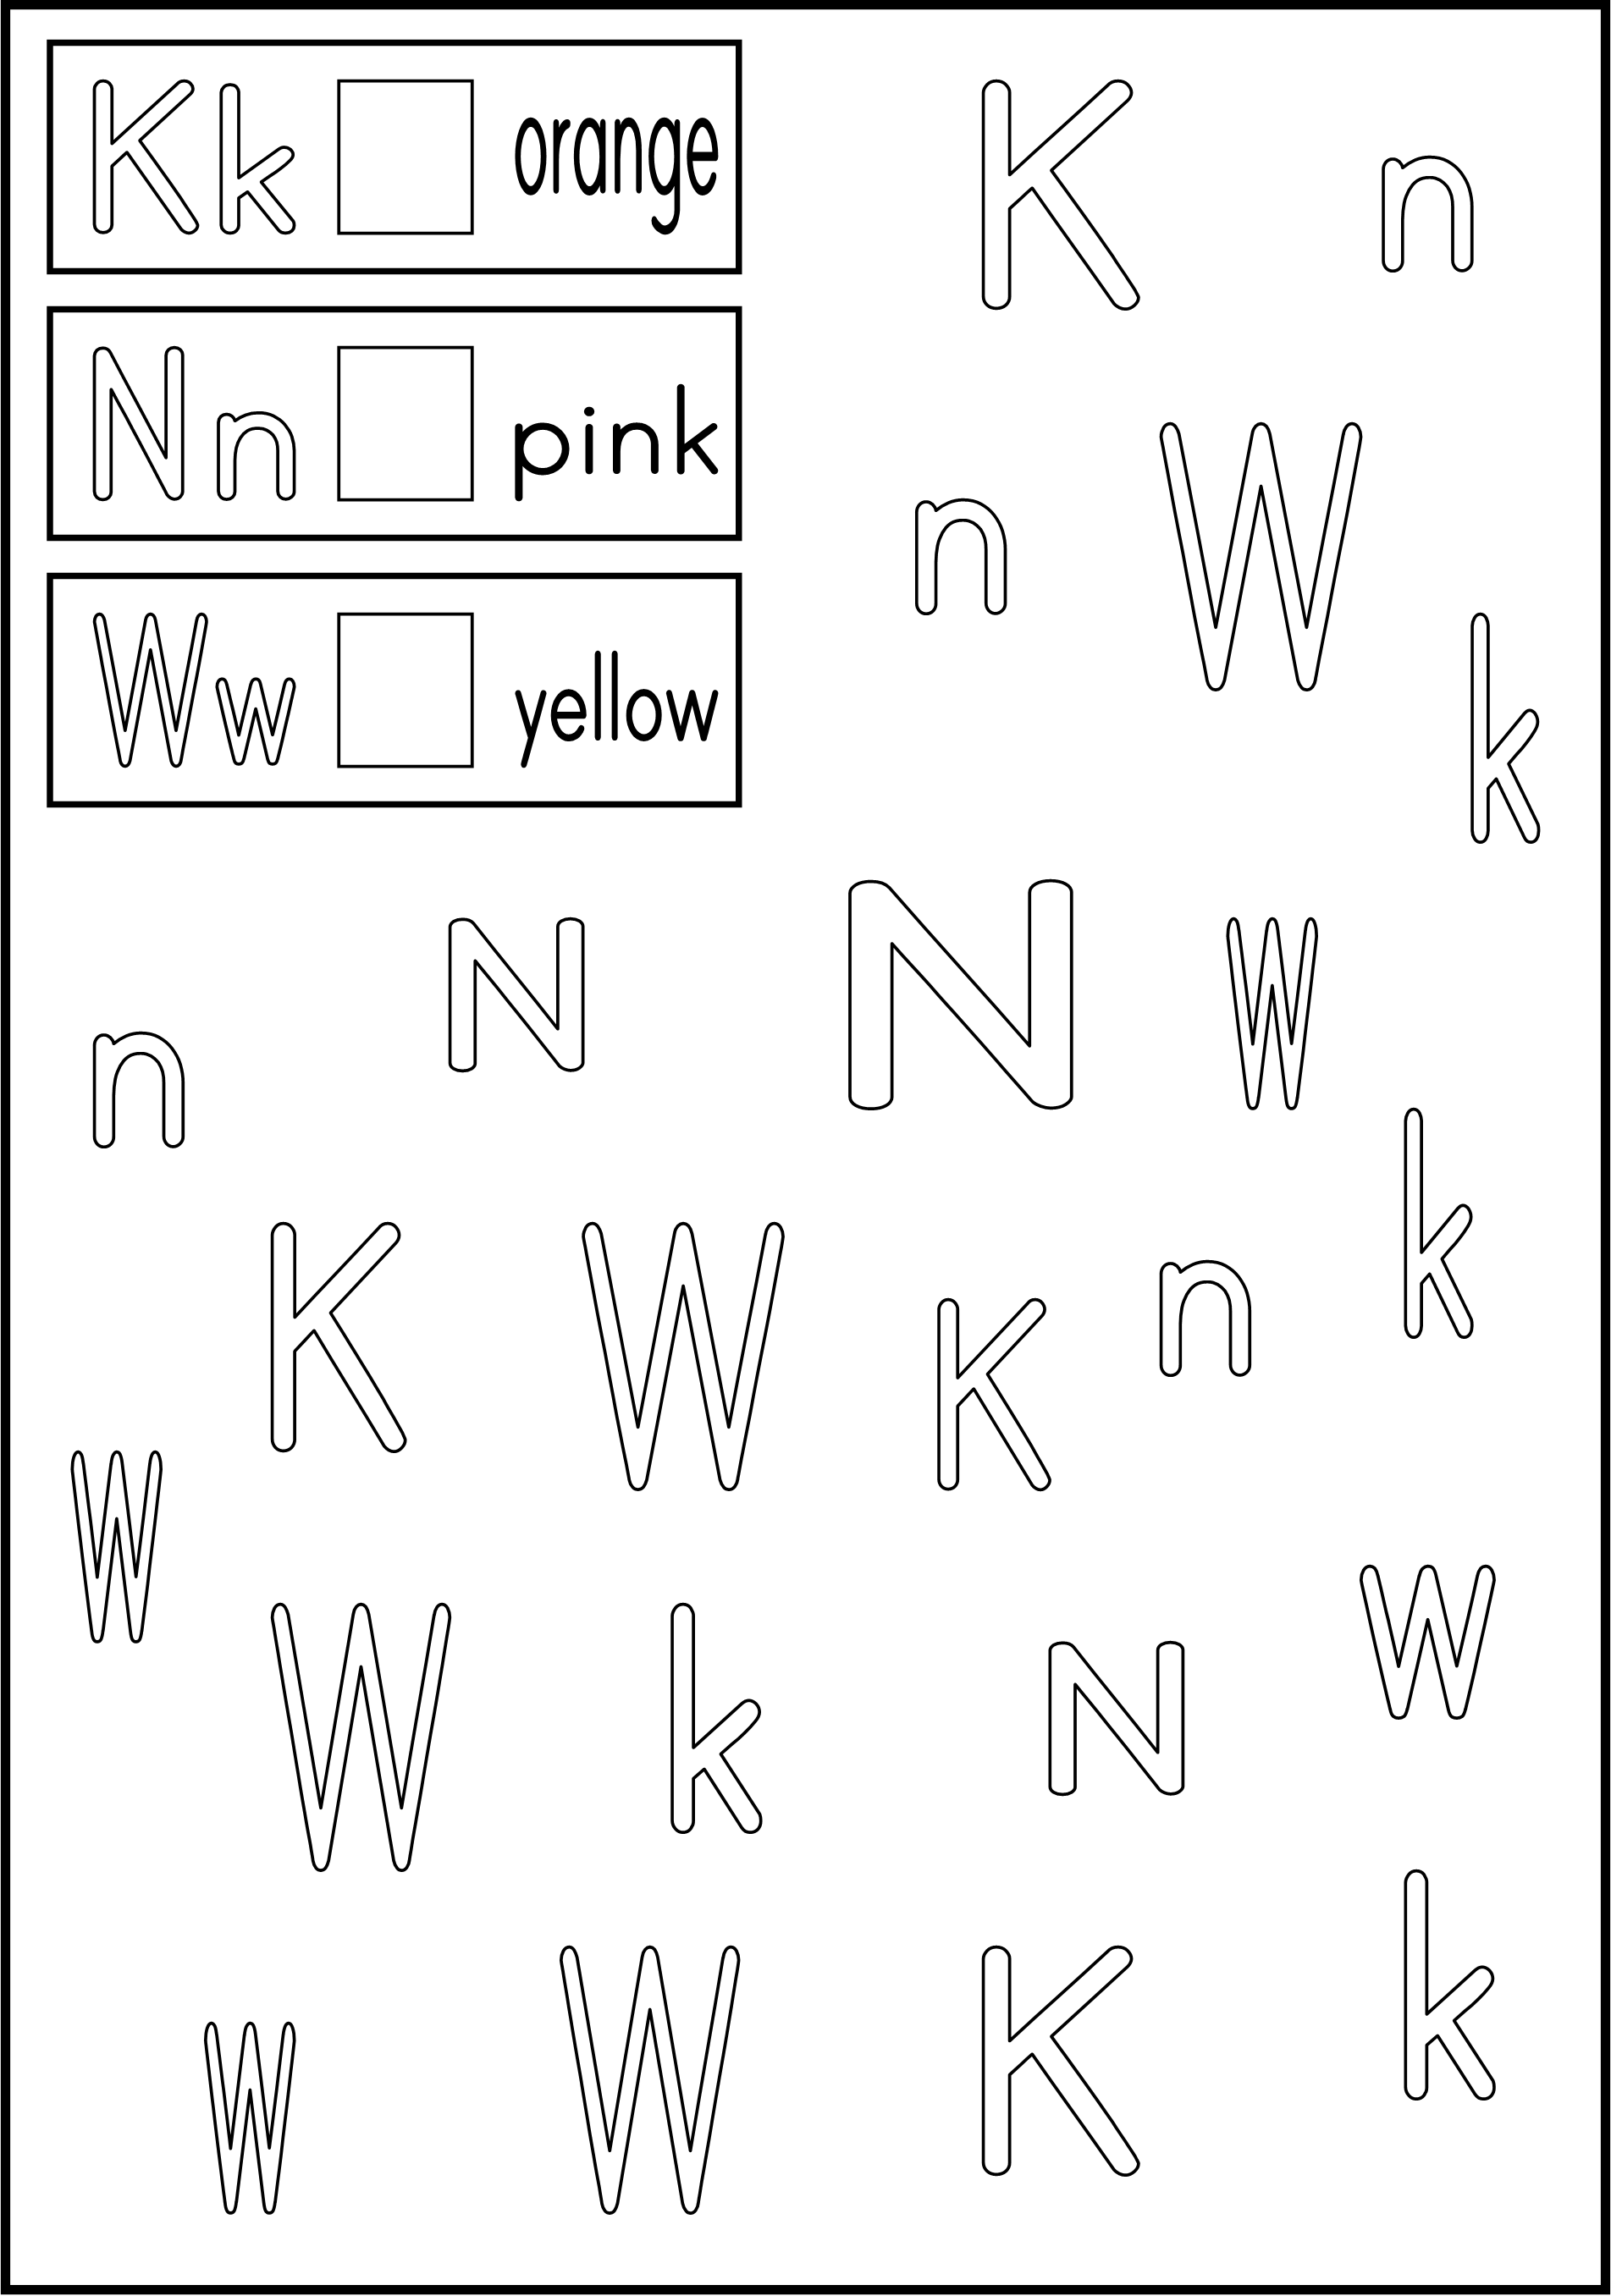 Free Worksheet Letter Identification Worksheets letter recognition printable worksheets rringband alphabet activity follow the directions trace within lines worksheets